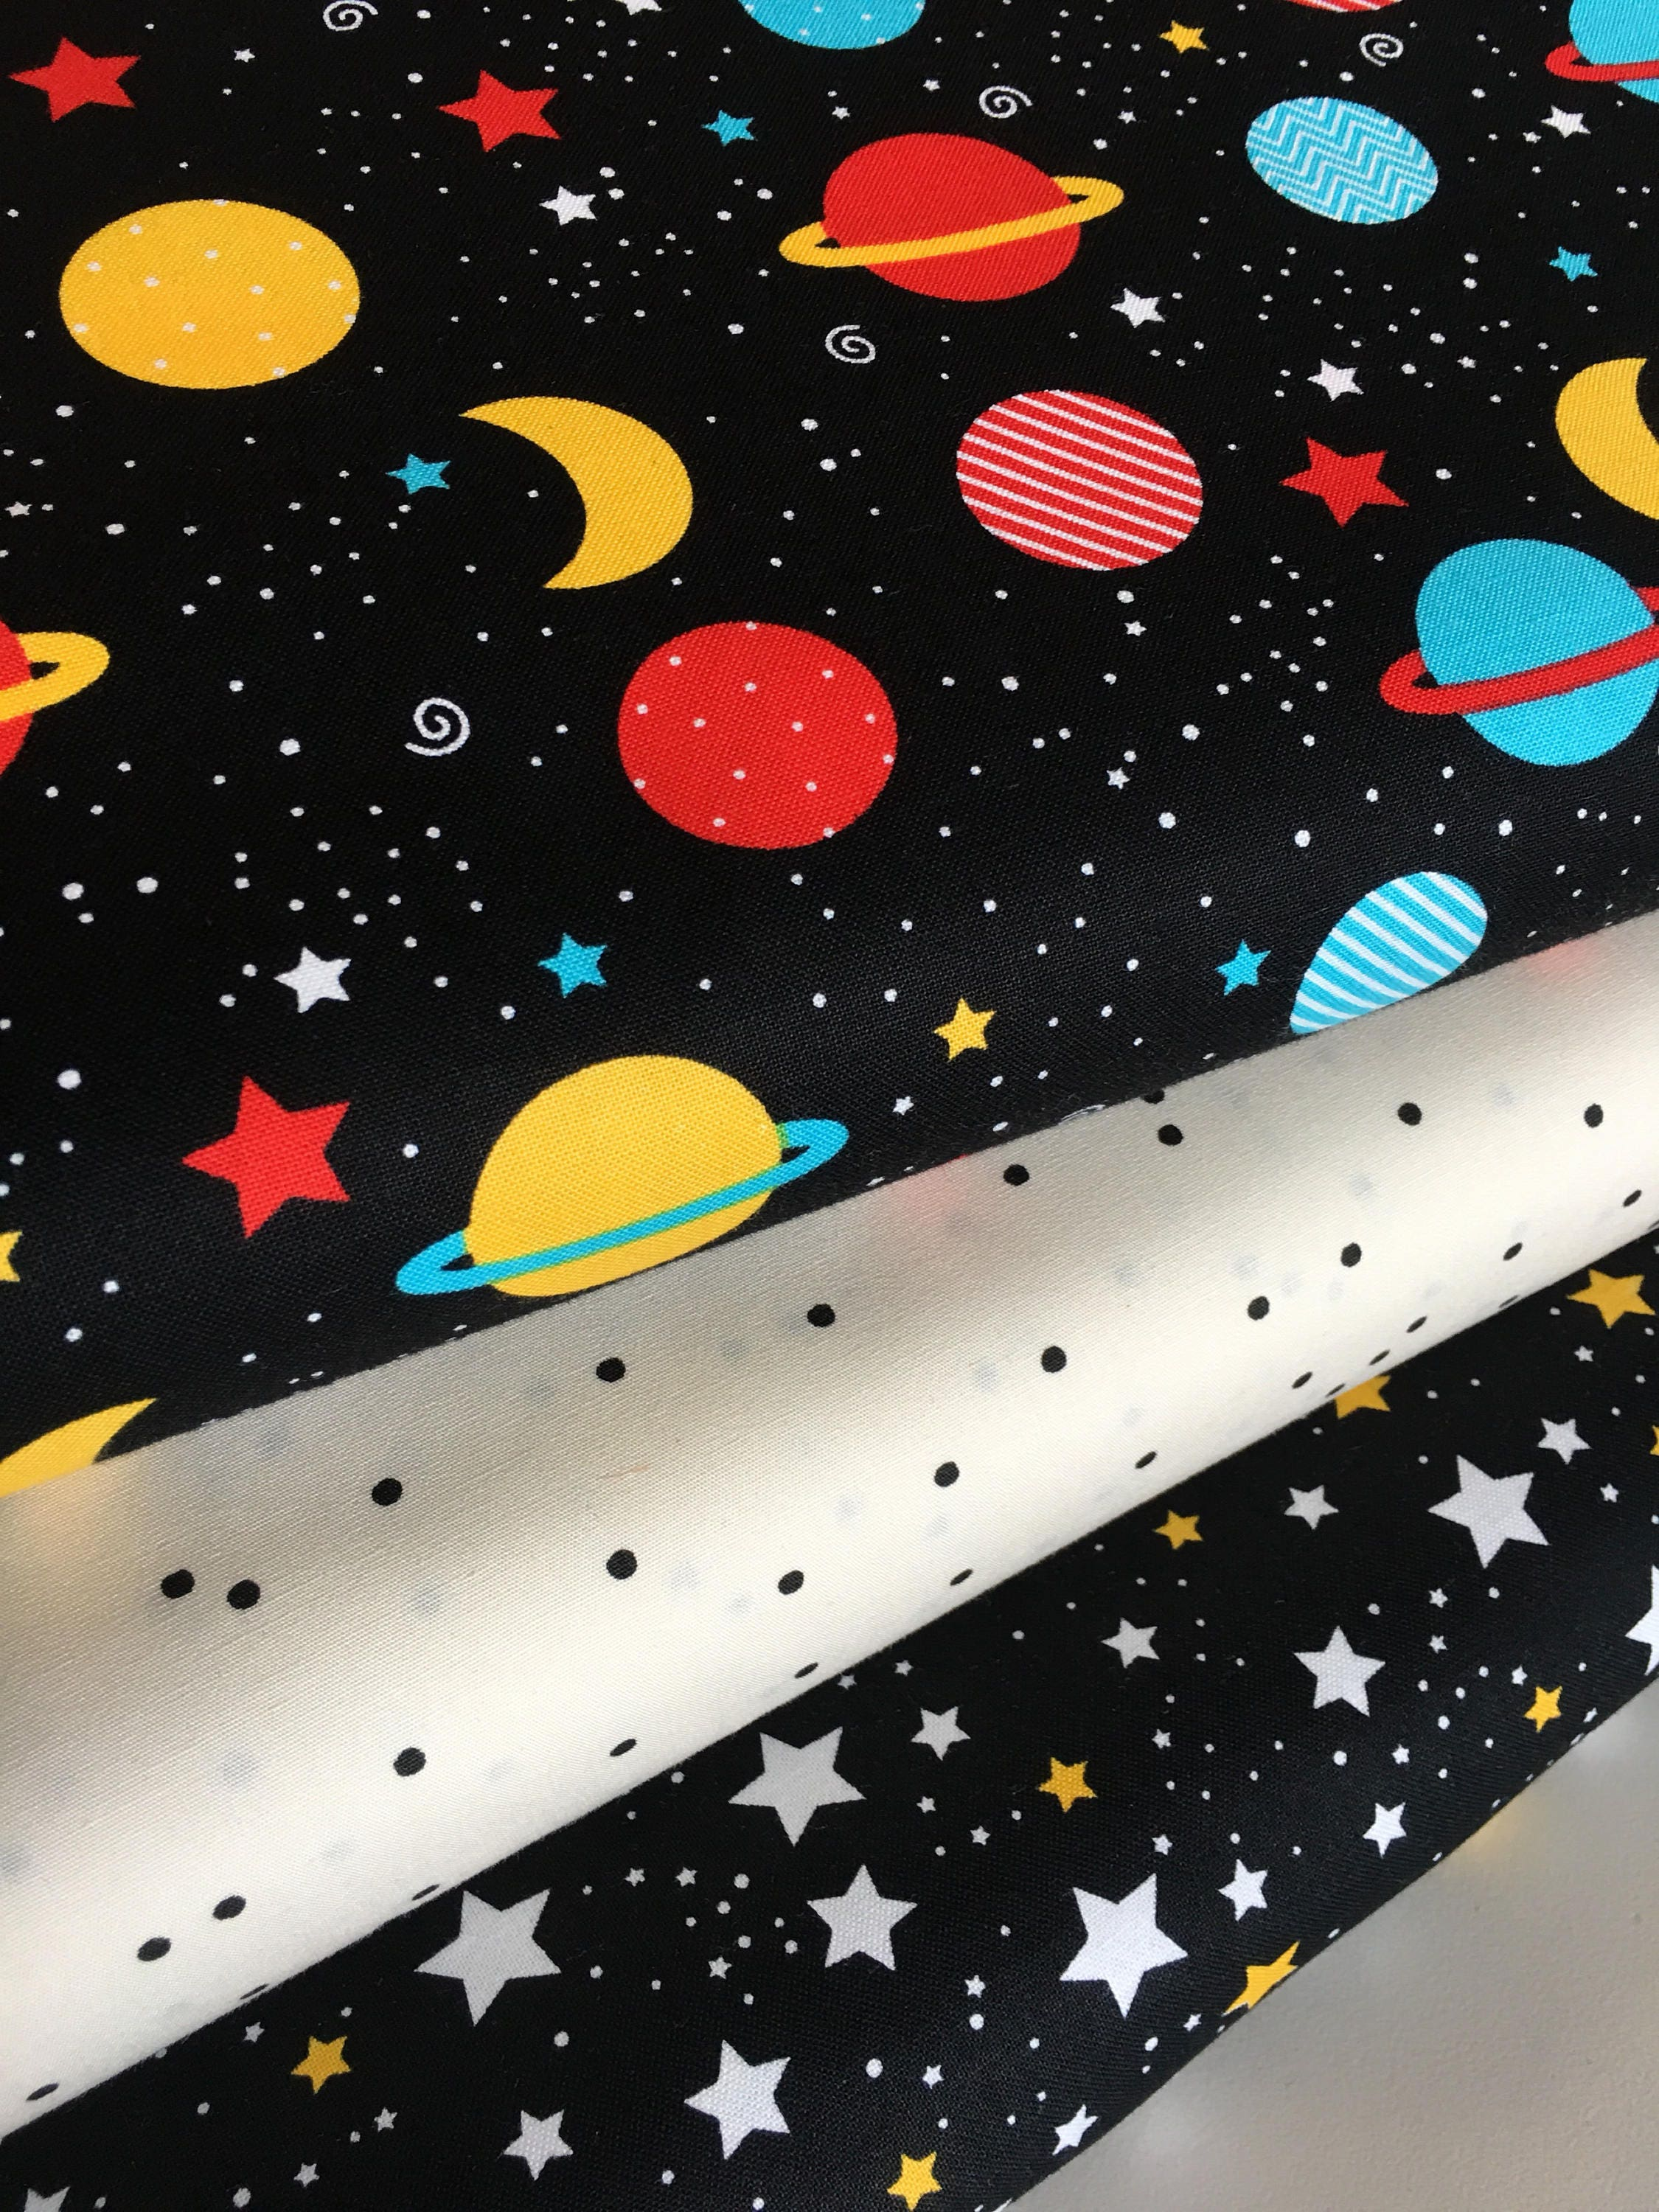 Space adventure fabric star fabric planet fabric for Space fabric